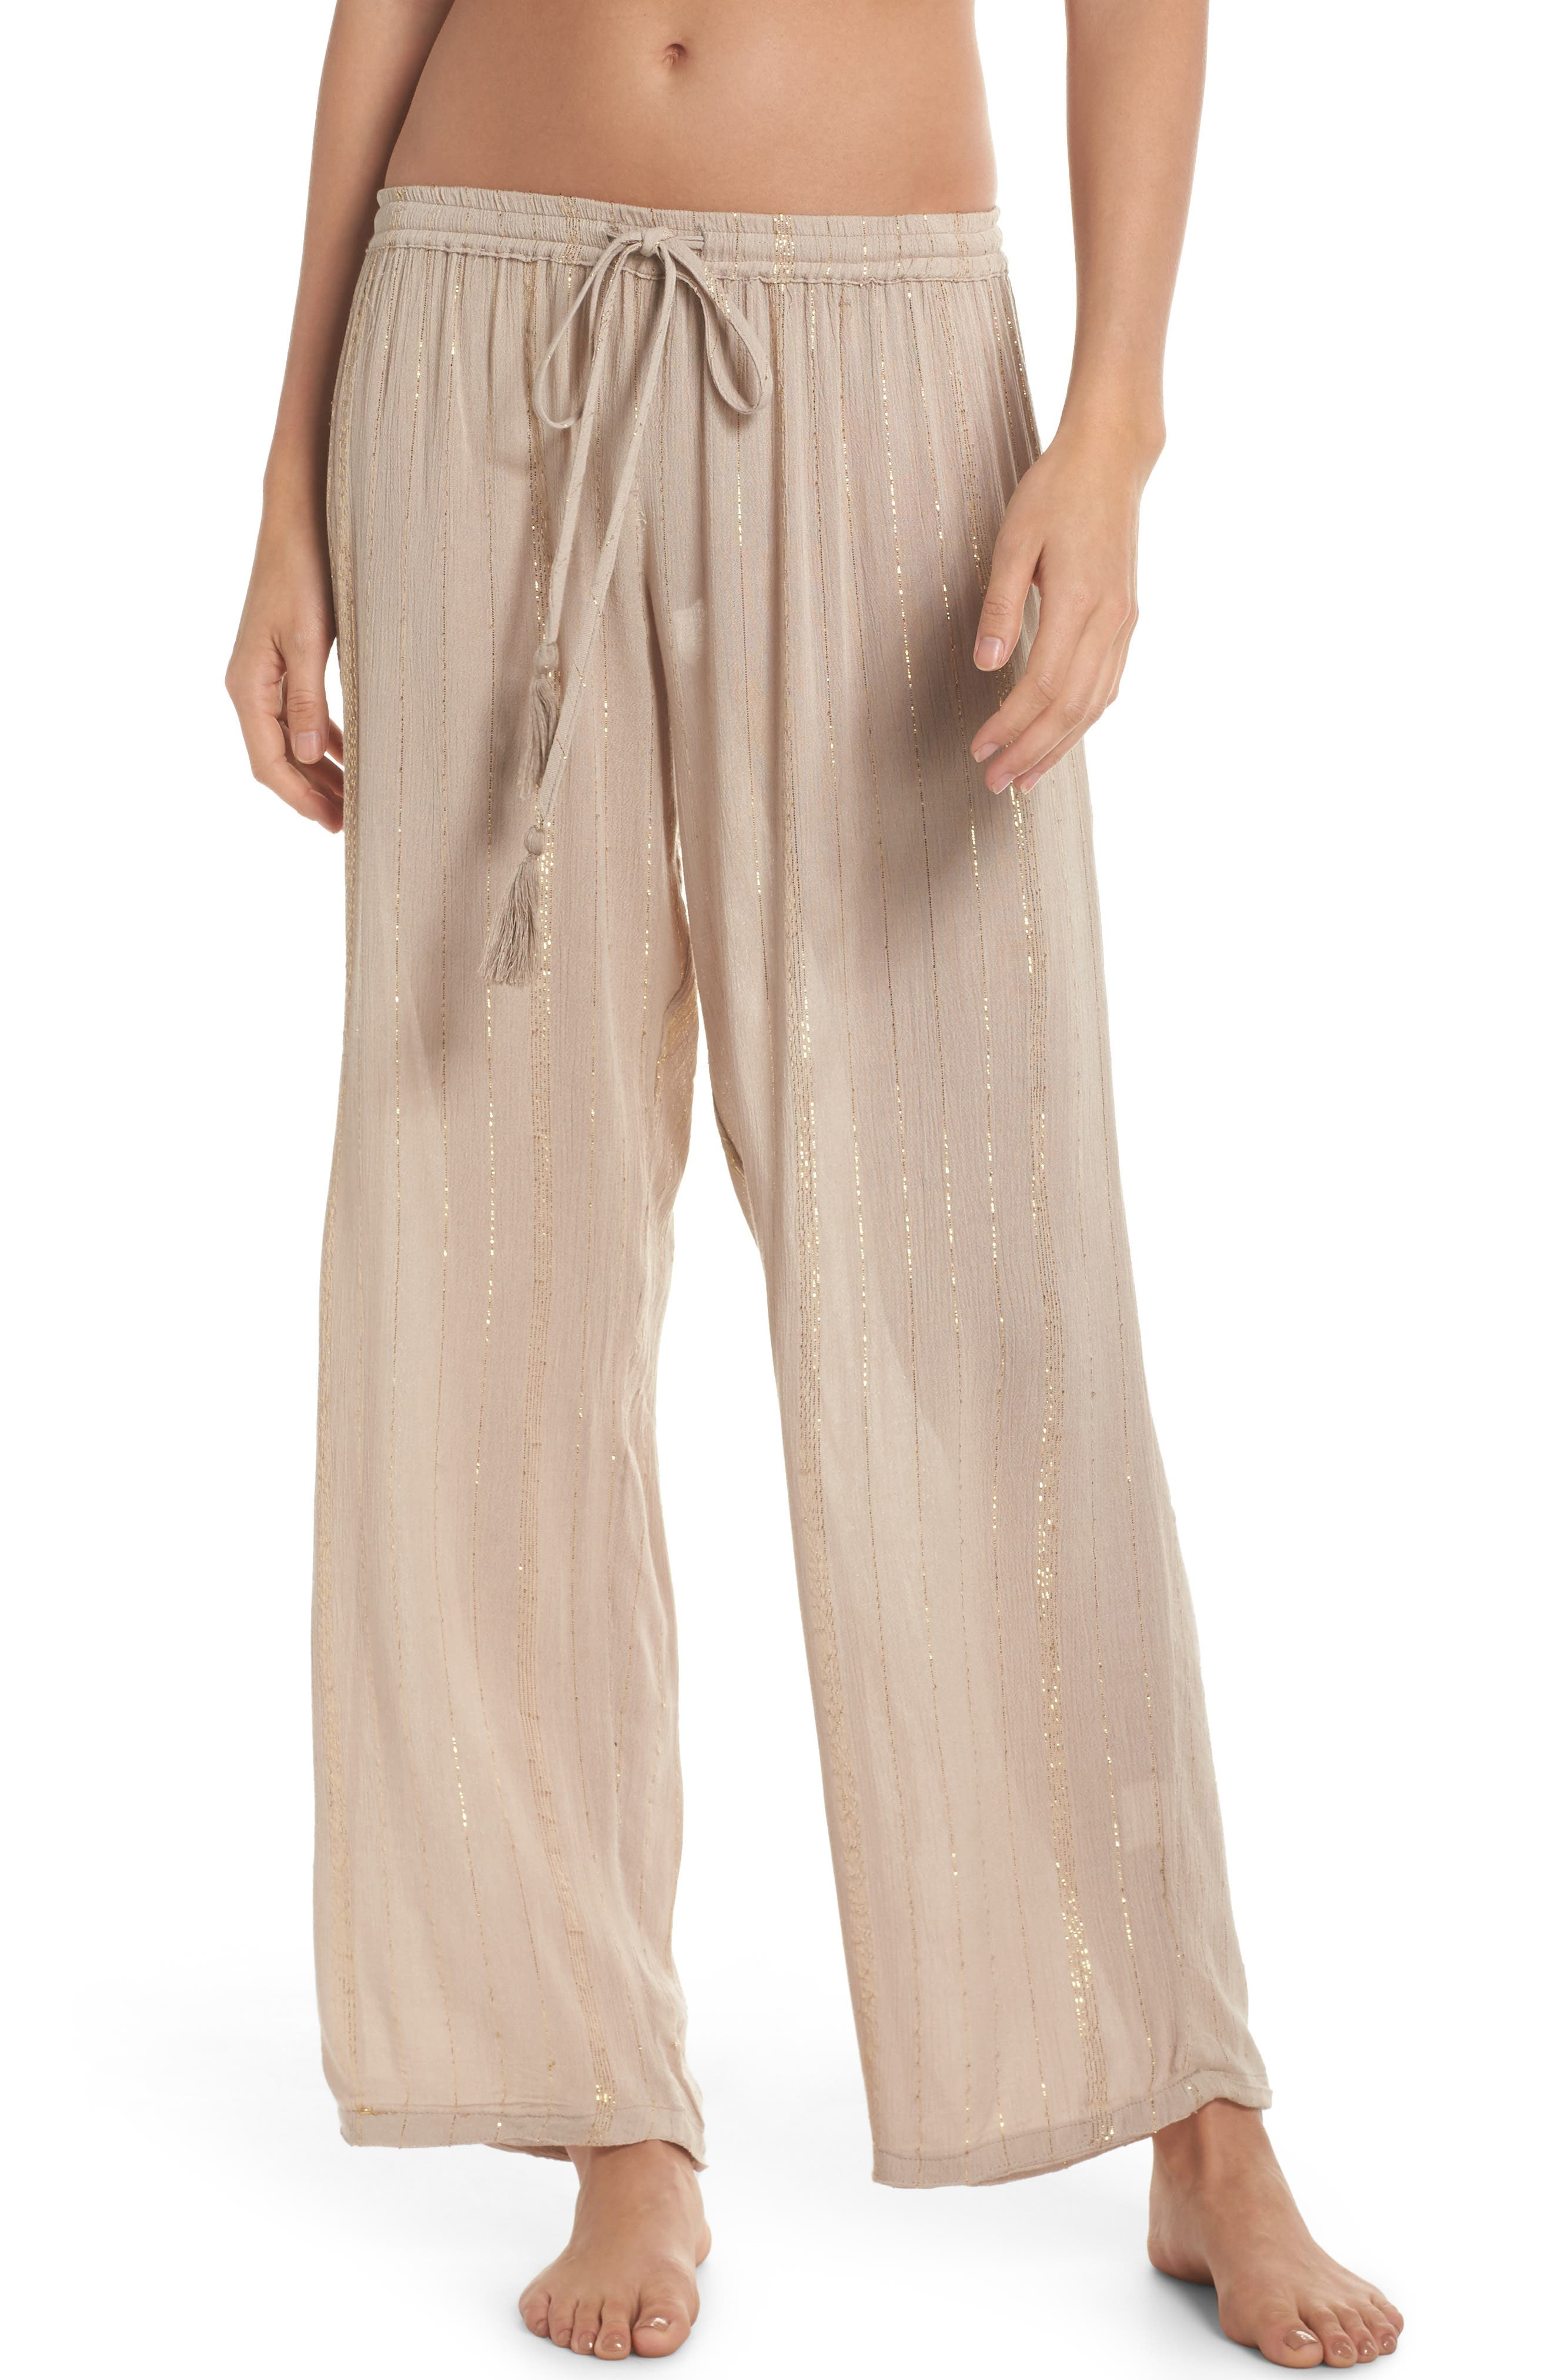 Iris Cover-Up Pants,                         Main,                         color, Taupe/ Gold